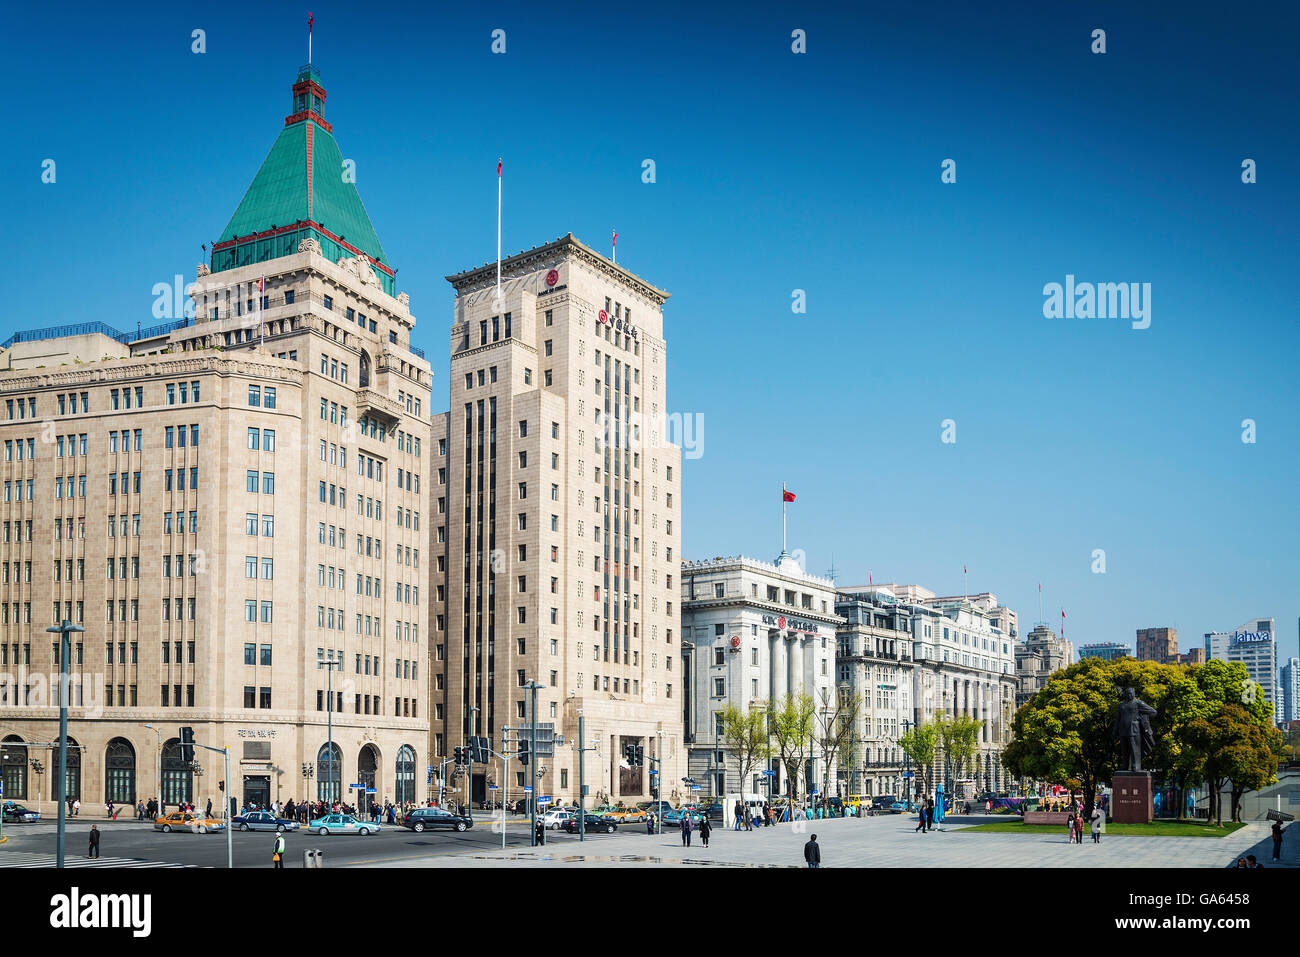 bund european colonial heritage riverside landmark area of central shanghai city china - Stock Image